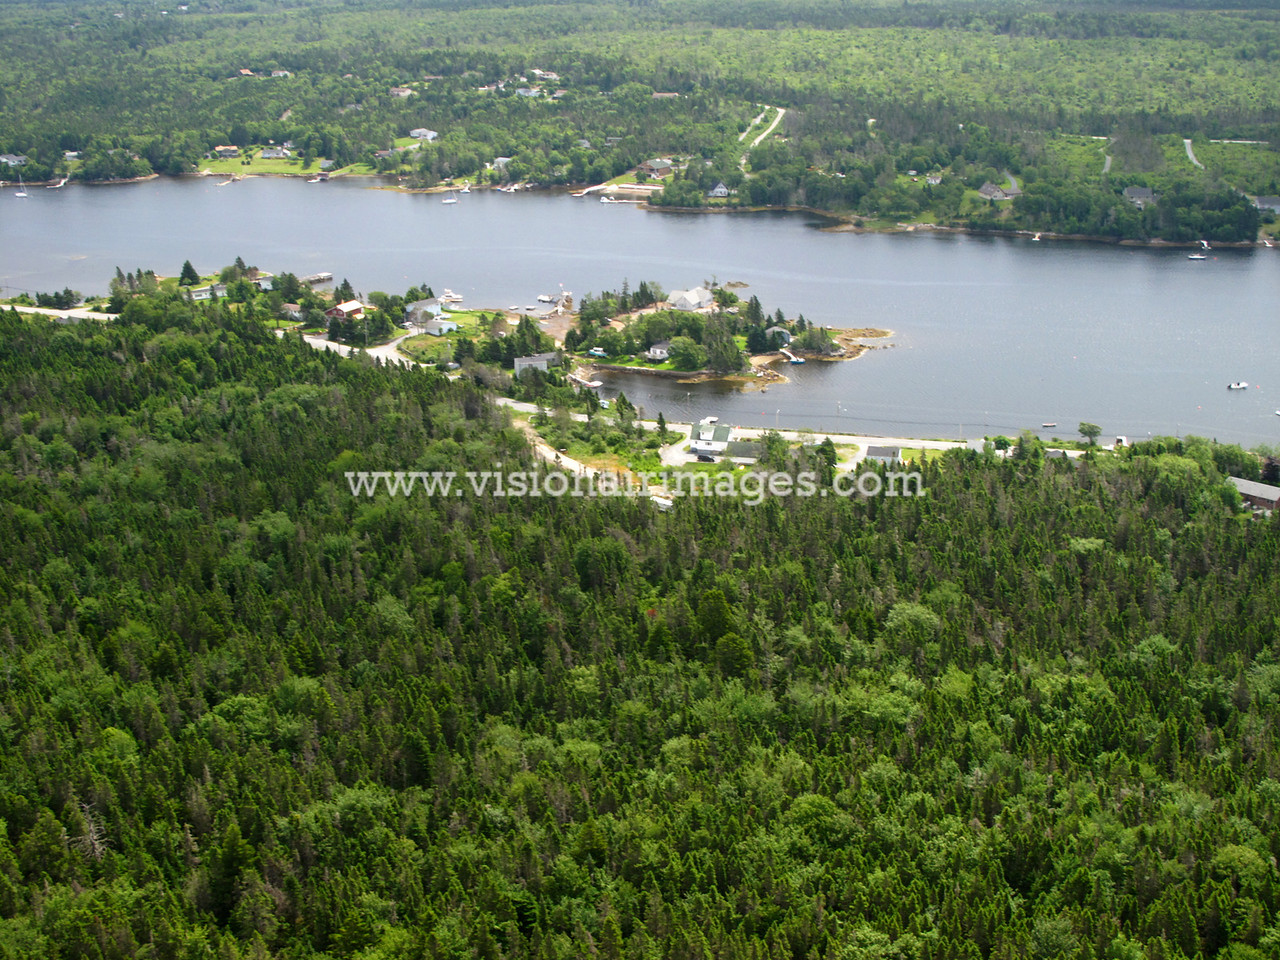 Crane Cove, Prospect Bay, Shad Bay, Lighthouse Route Aerial, Nova Scotia, Canada